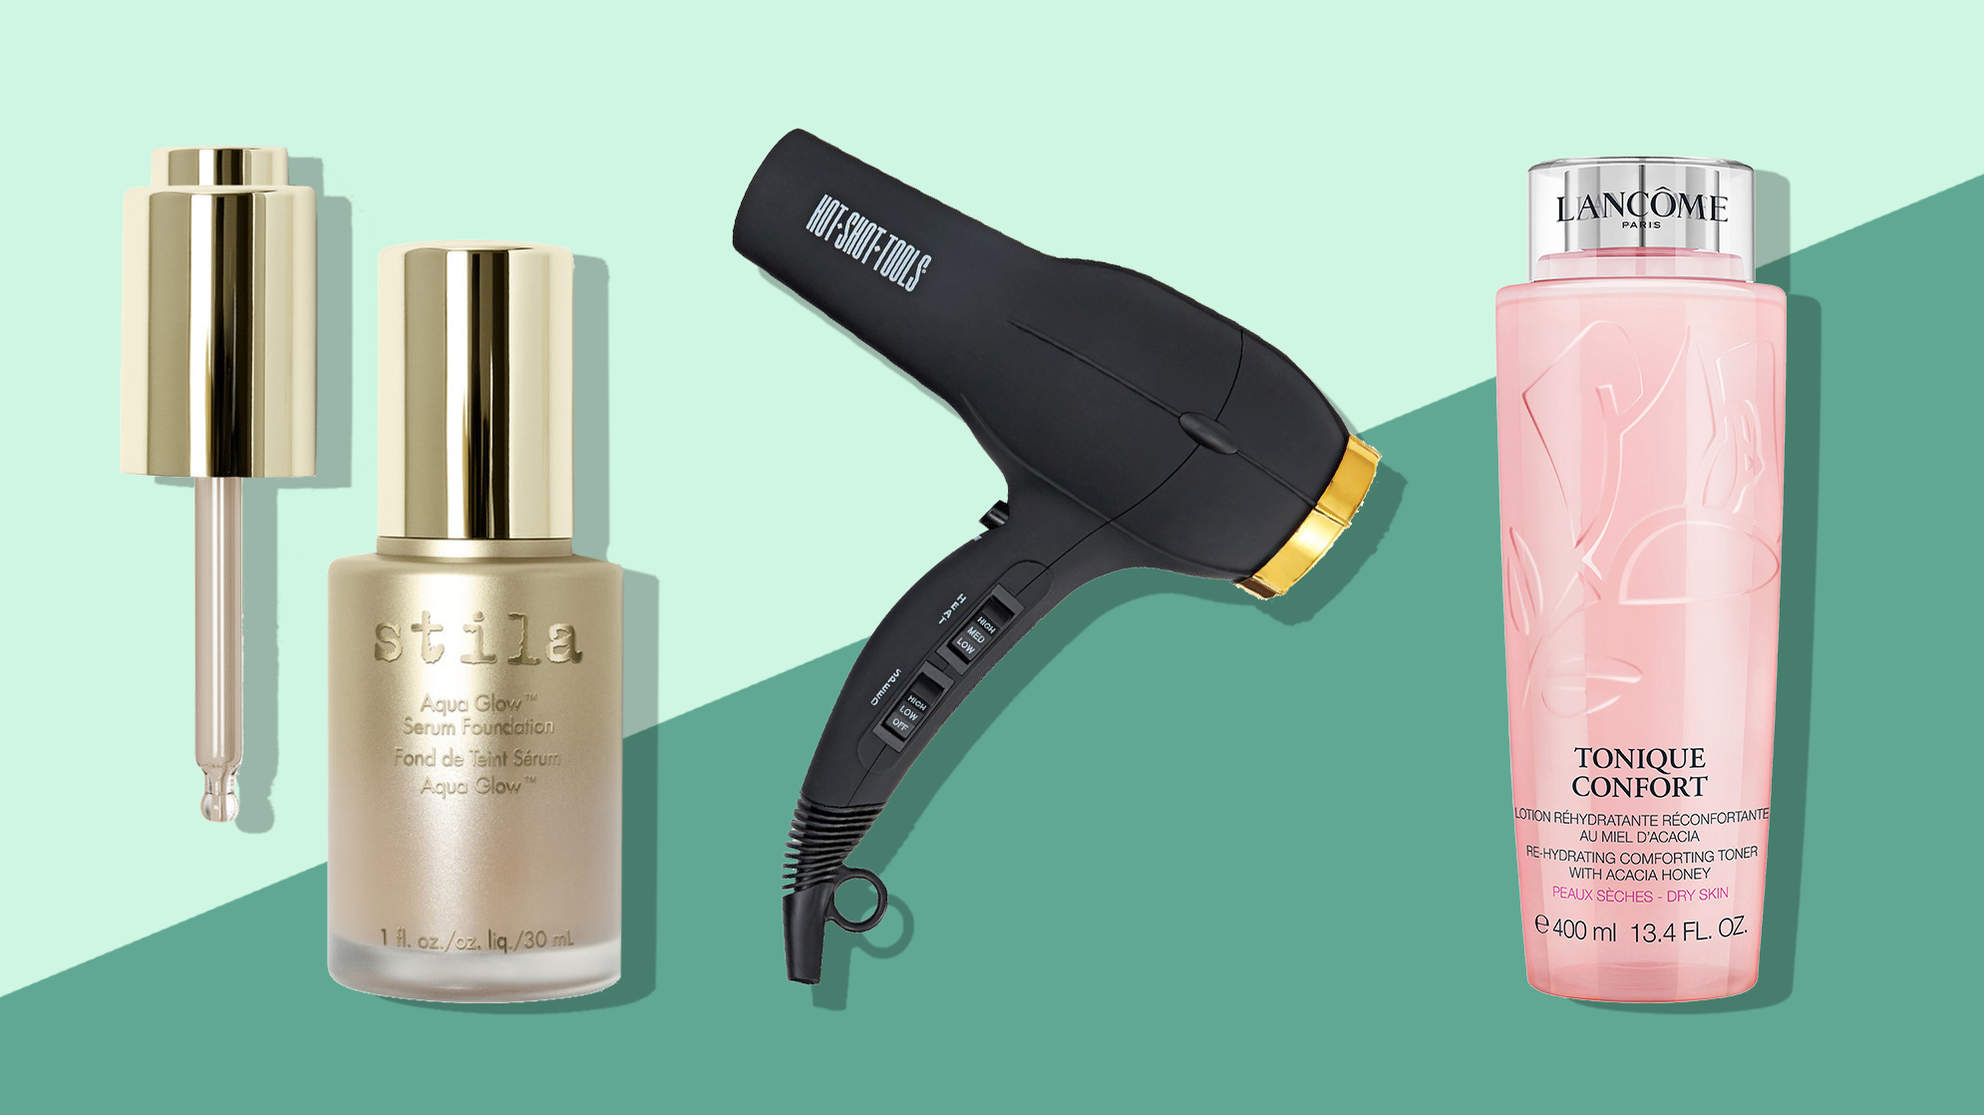 Black Friday 2017 Dermstore: Stila Serum Foundation, Sally Beauty: ceramic hair dryer hair tools, lord and taylor: lancome comforting rehydrating toner,